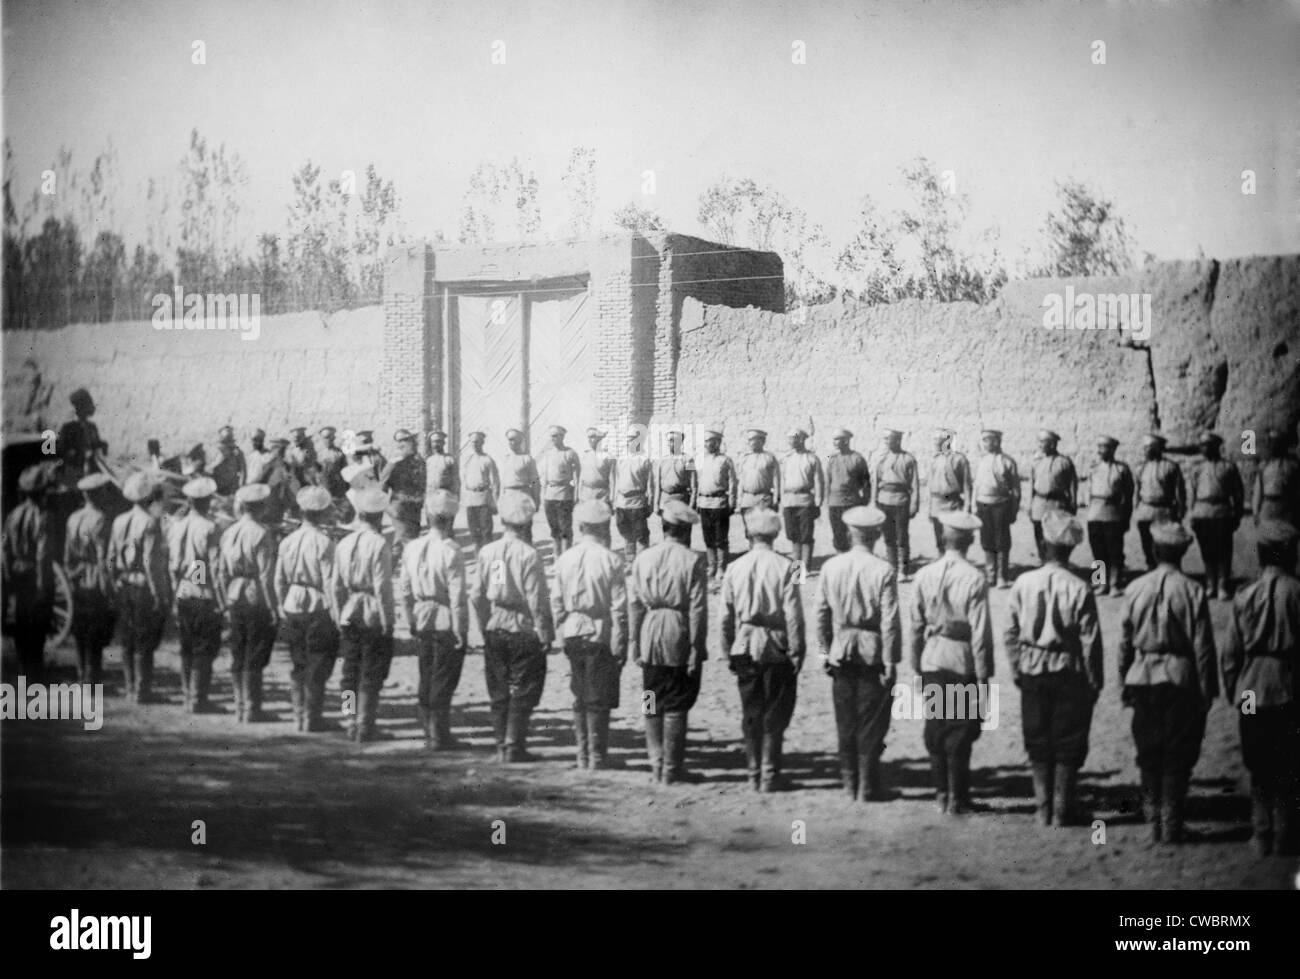 Russian troops invaded Iran in 1911, to counter the new constitutional government's steps toward national sovereignty - Stock Image